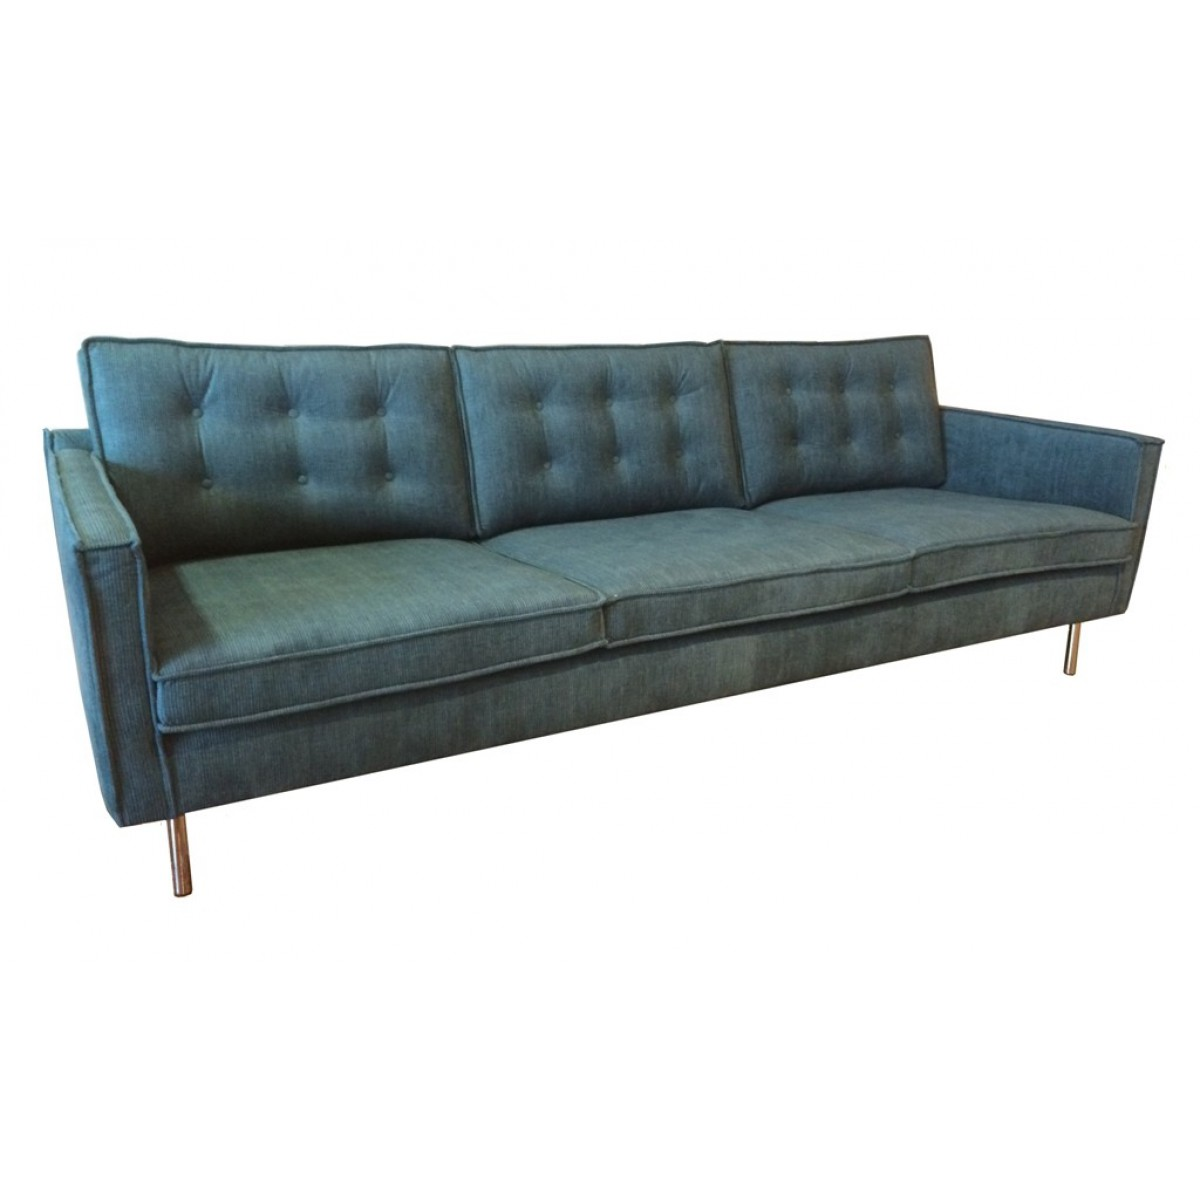 malm sofa retro sofa i live design preisg nstig online. Black Bedroom Furniture Sets. Home Design Ideas